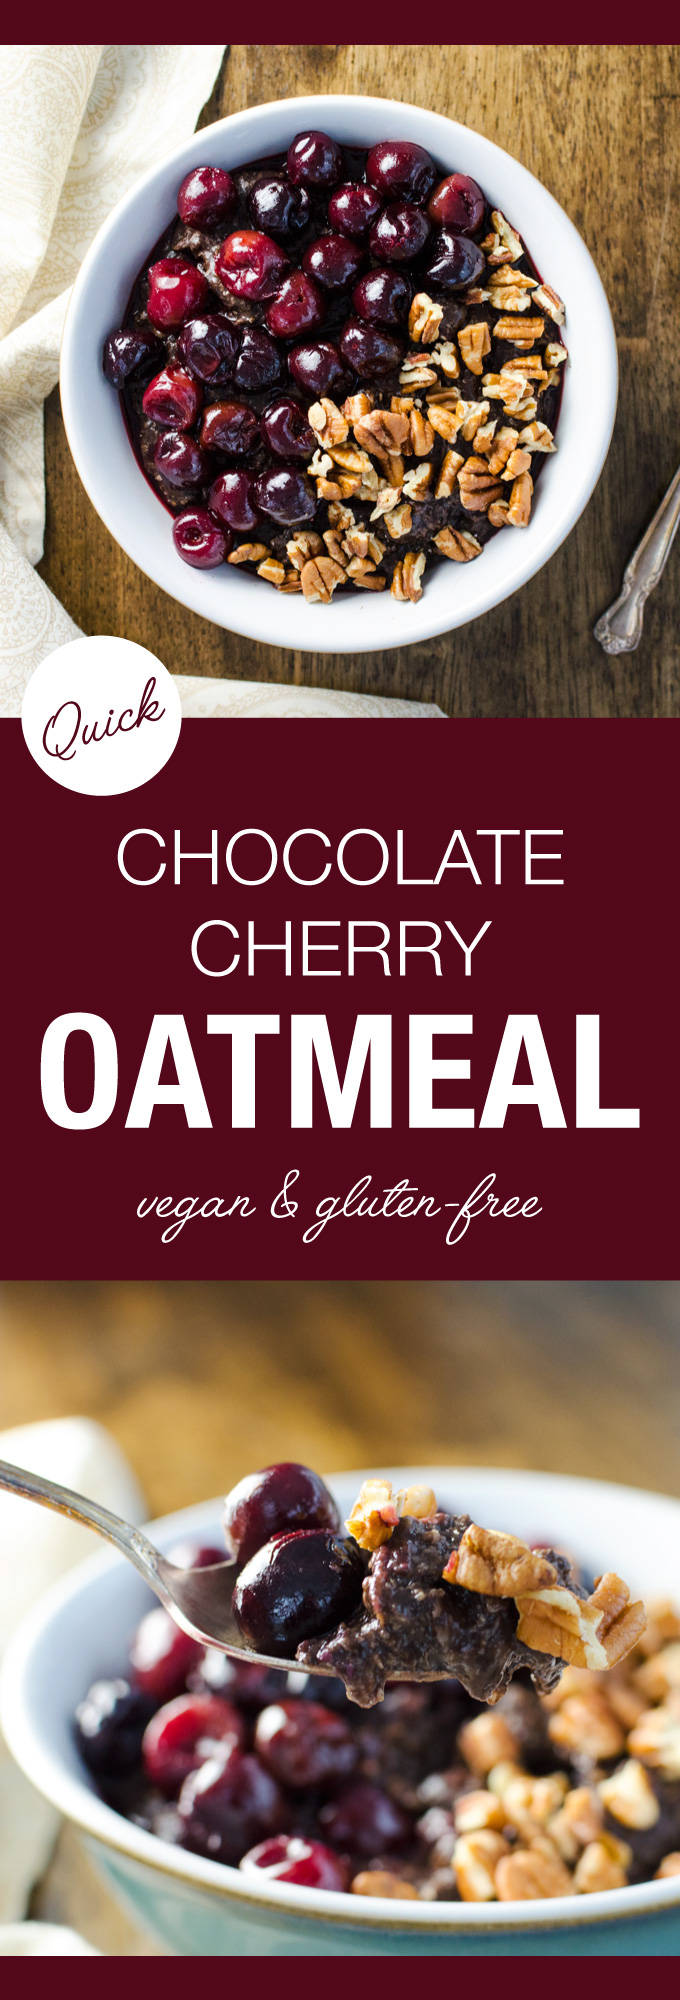 Quick Chocolate Cherry Oatmeal - this easy vegan and gluten-free breakfast recipe is full of nutrient dense ingredients - cooked banana and warmed cherries add just the right amount of natural sweetness.   VeggiePrimer.com